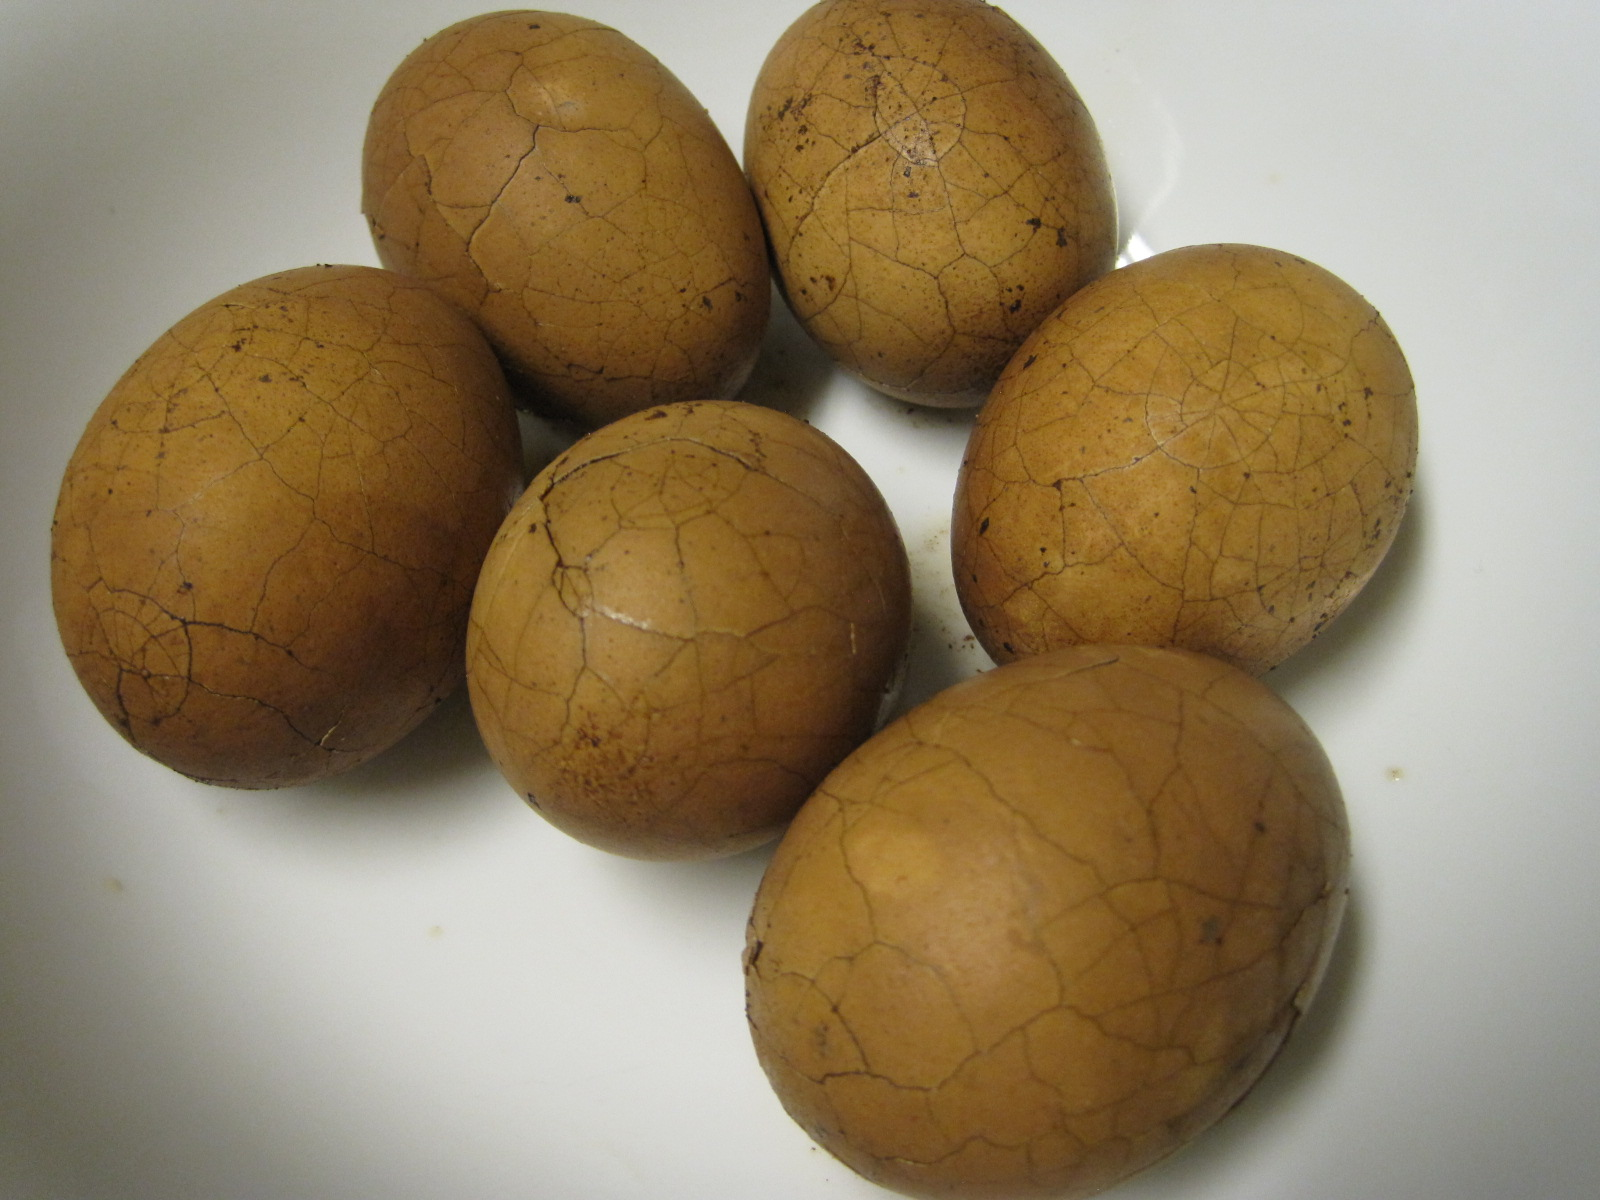 Chinese Marbled Tea Eggs (茶葉蛋) |